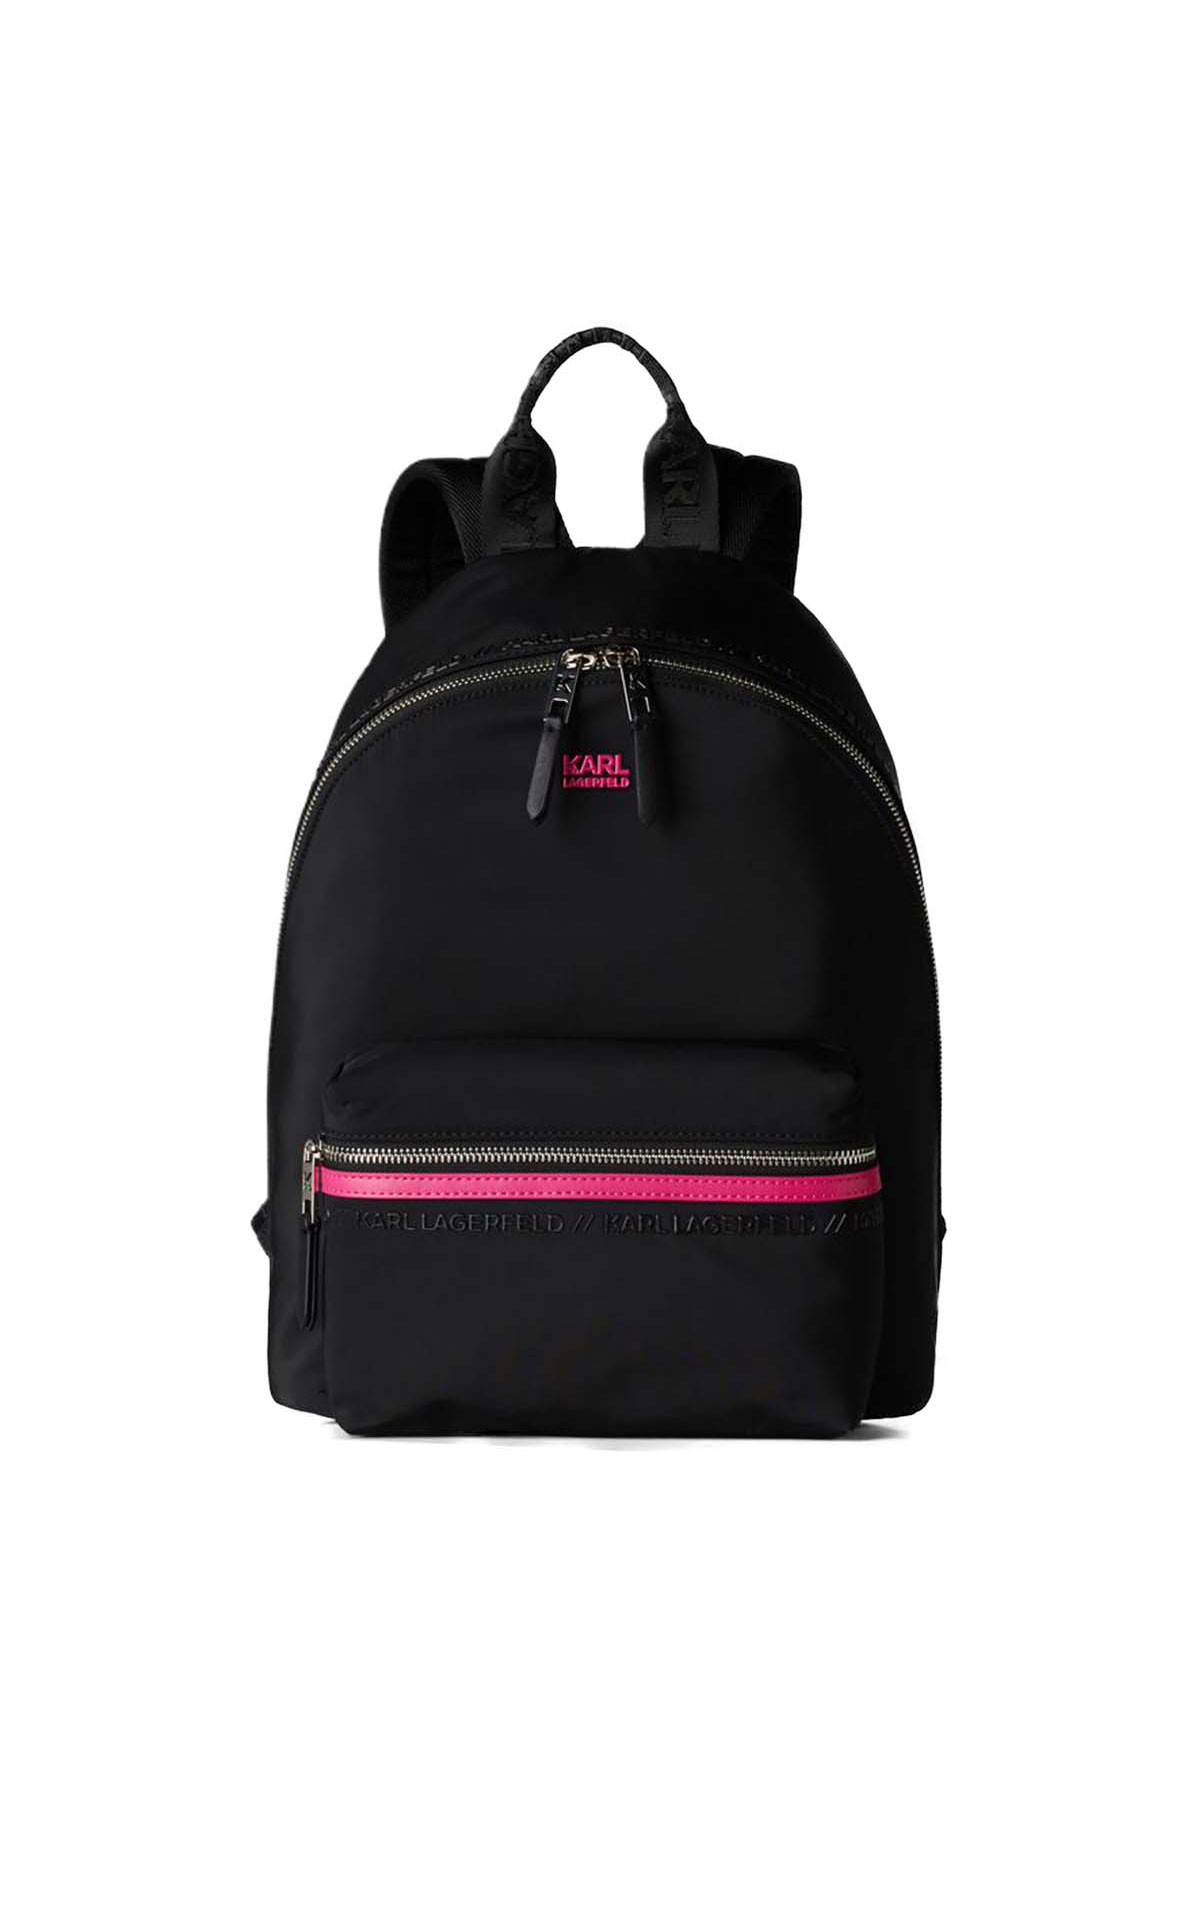 Karl Lagerfeld Athleisure backpack at The Bicester Village Shopping Collection